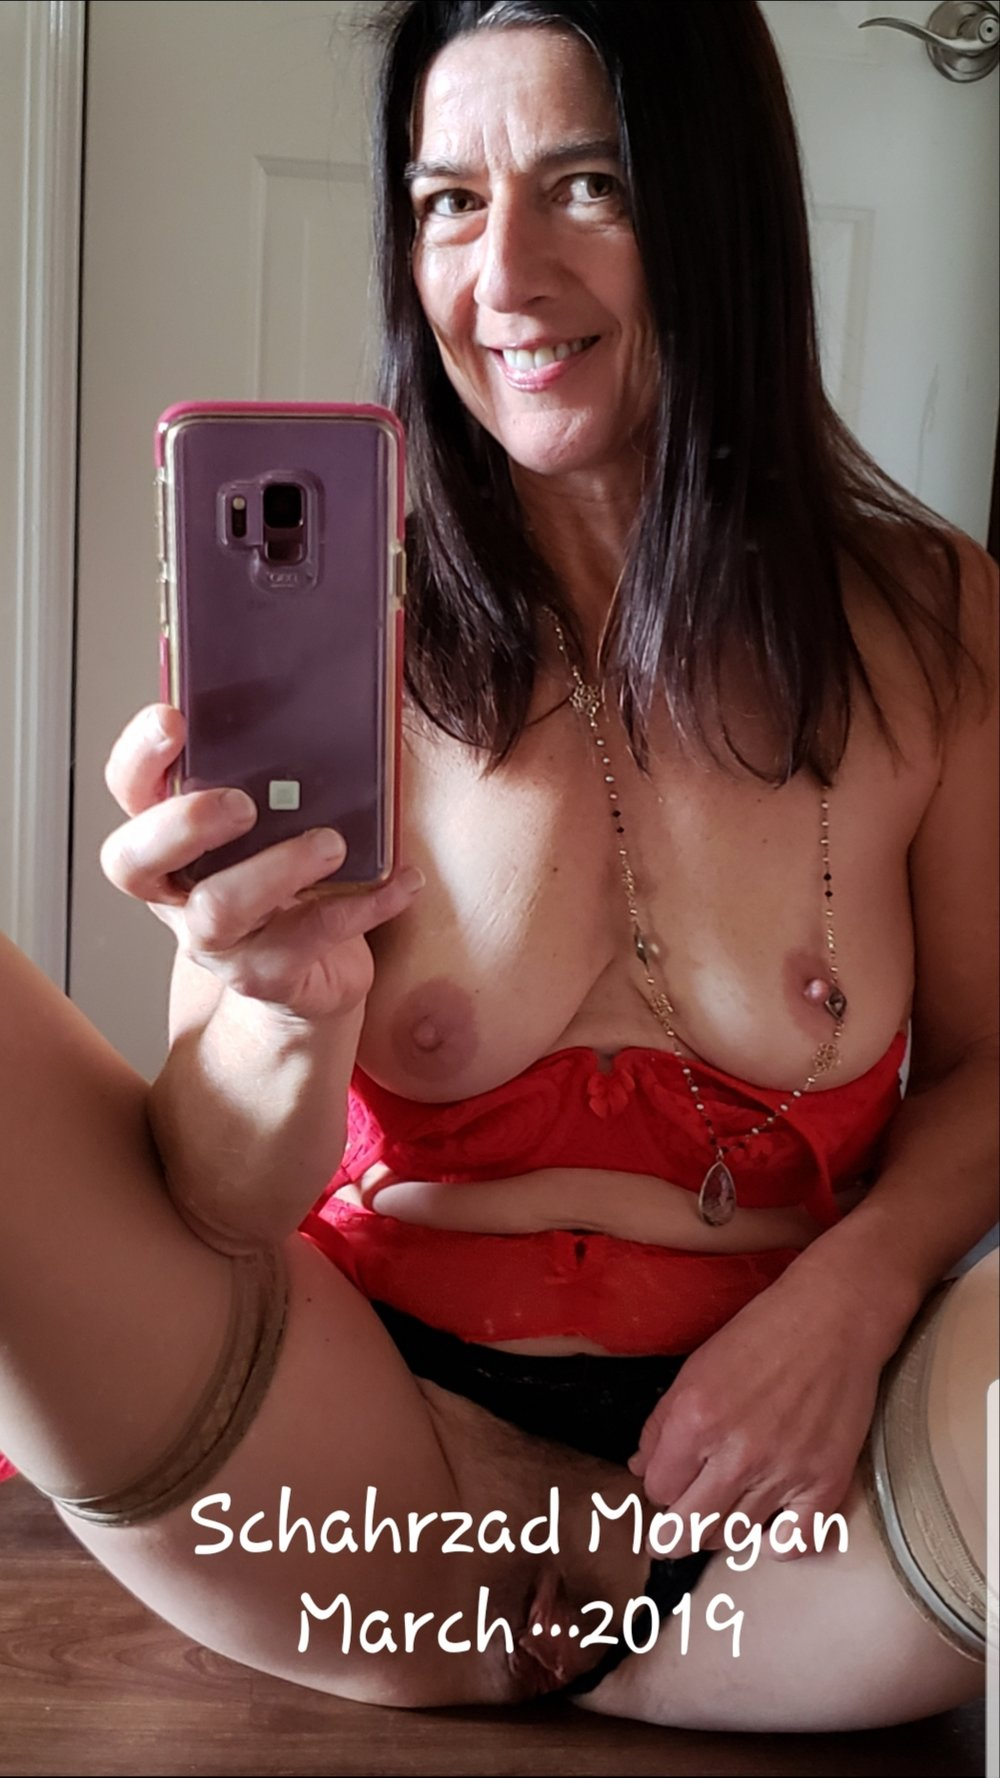 pussy pic garters march 2019.jpg